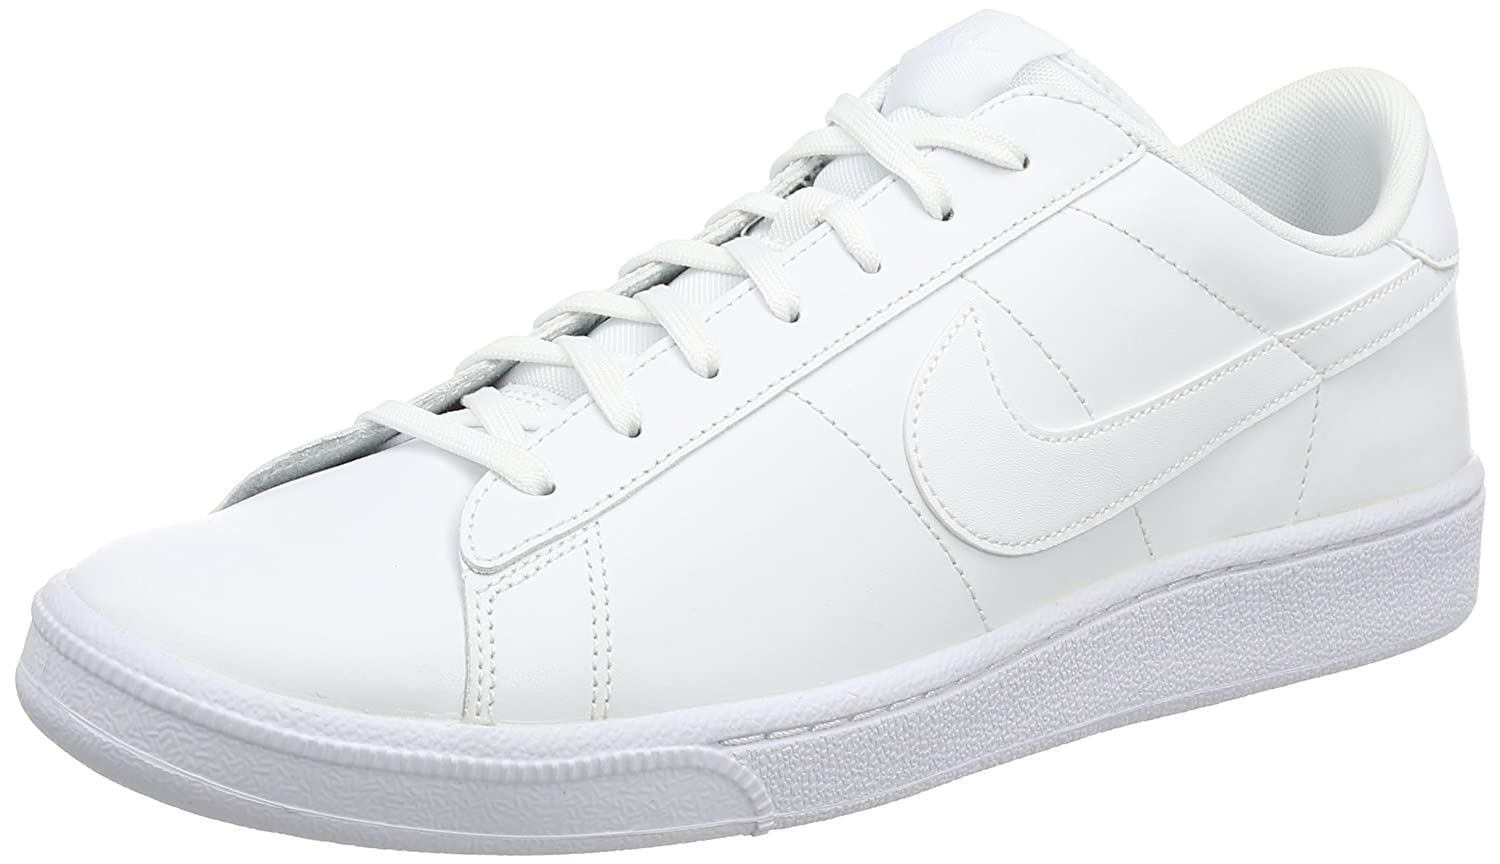 competitive price afe0e 4b600 Amazon.com   Nike Tennis Classic CS Mens Sneaker White 683613 104,  Taille 41   Tennis   Racquet Sports